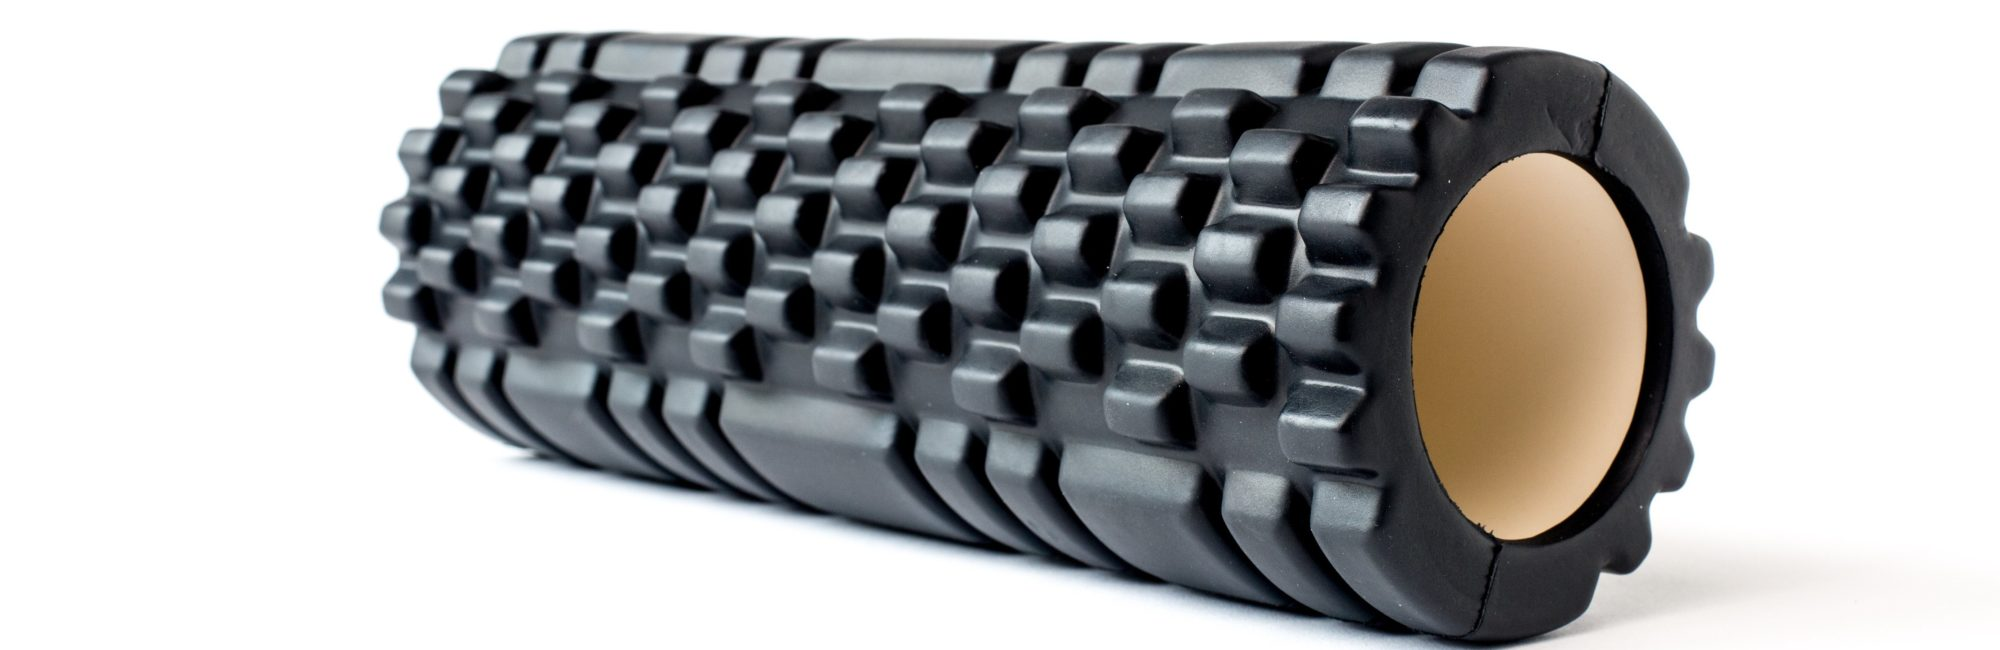 fitness-product-black-roller-low-angle_4460x4460